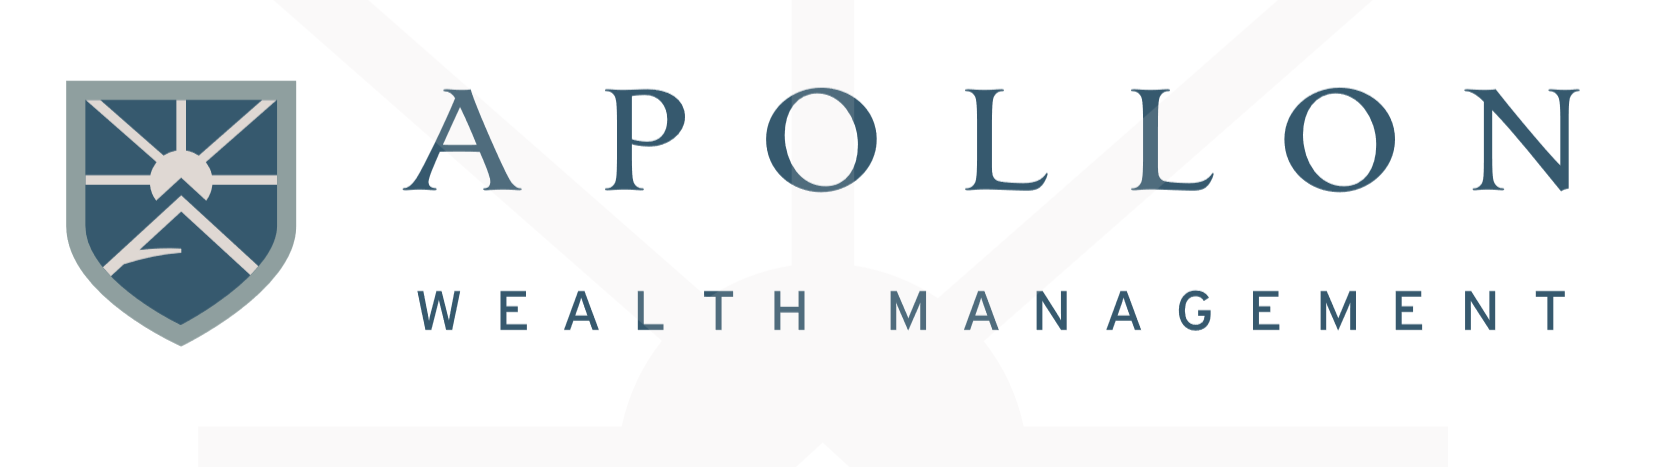 Apollon Wealth Management, LLC